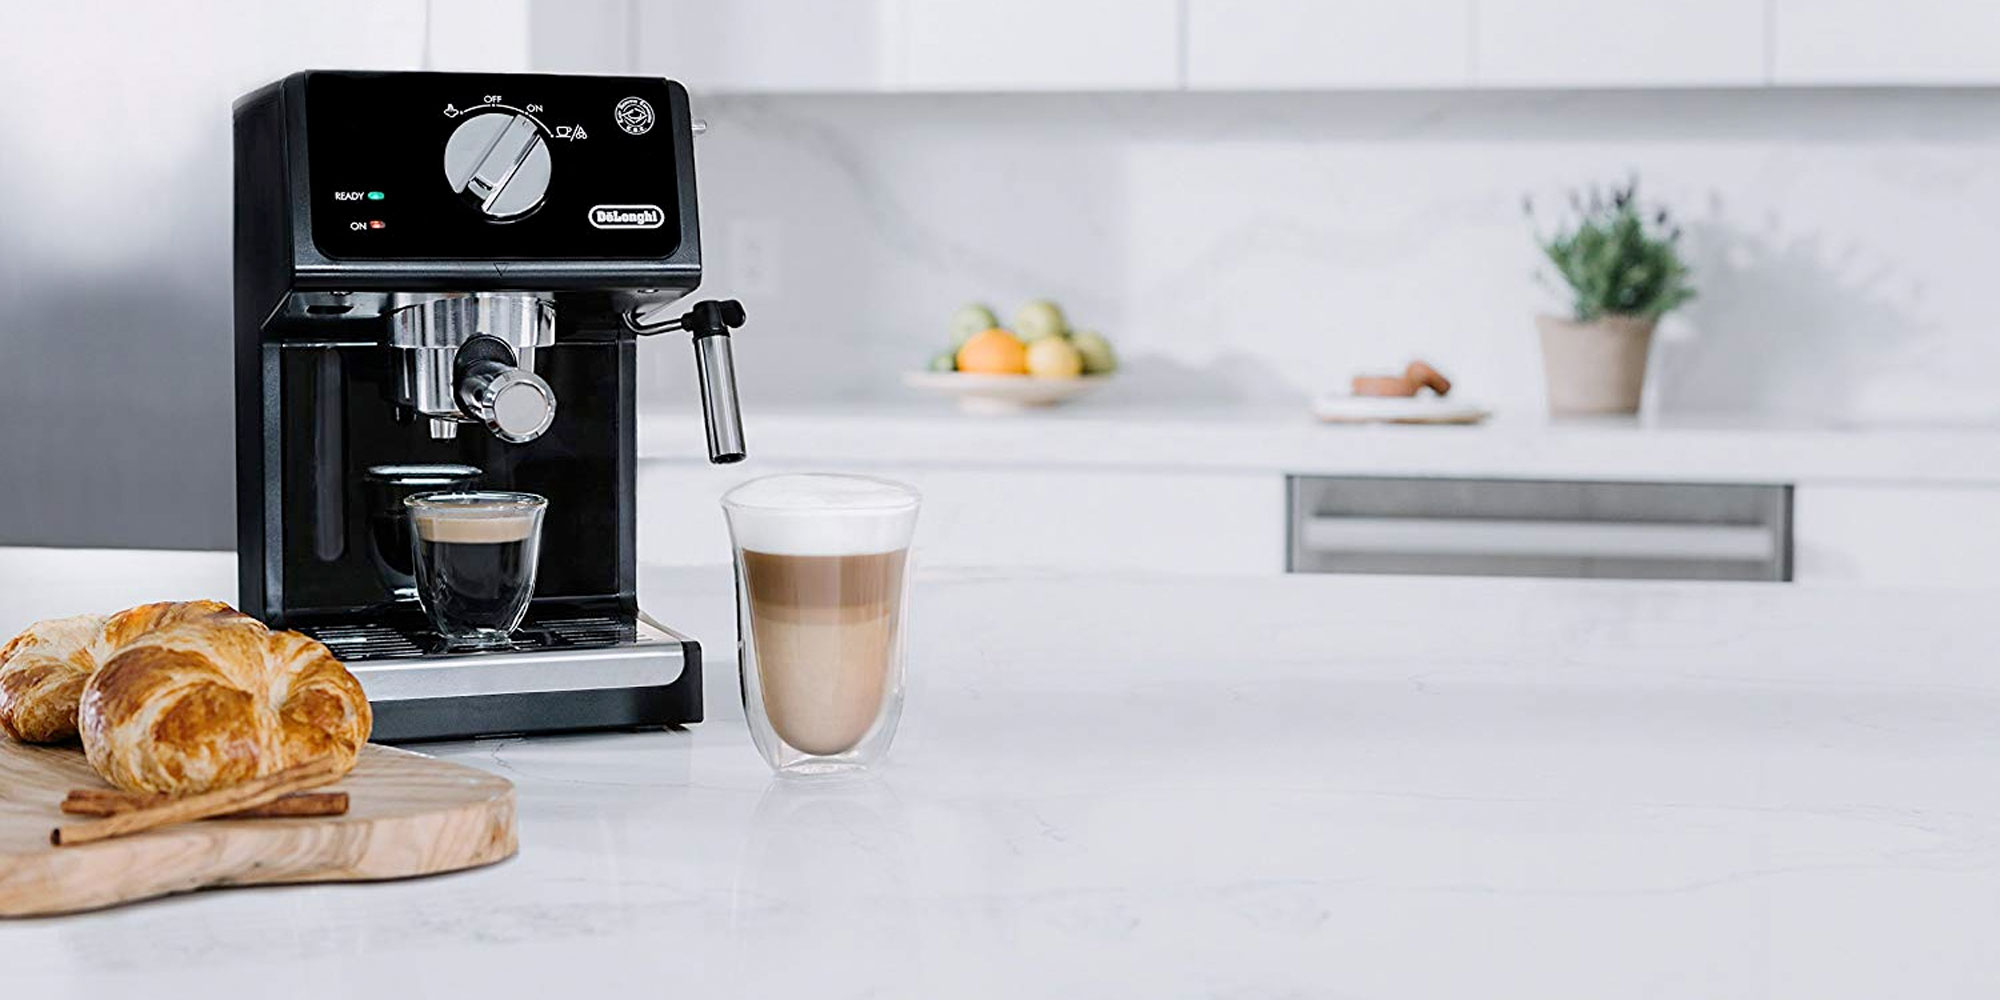 Enjoy espresso at home w/ De'Longhi's 15-bar machine & cappuccino system: $63 (Reg. $120)